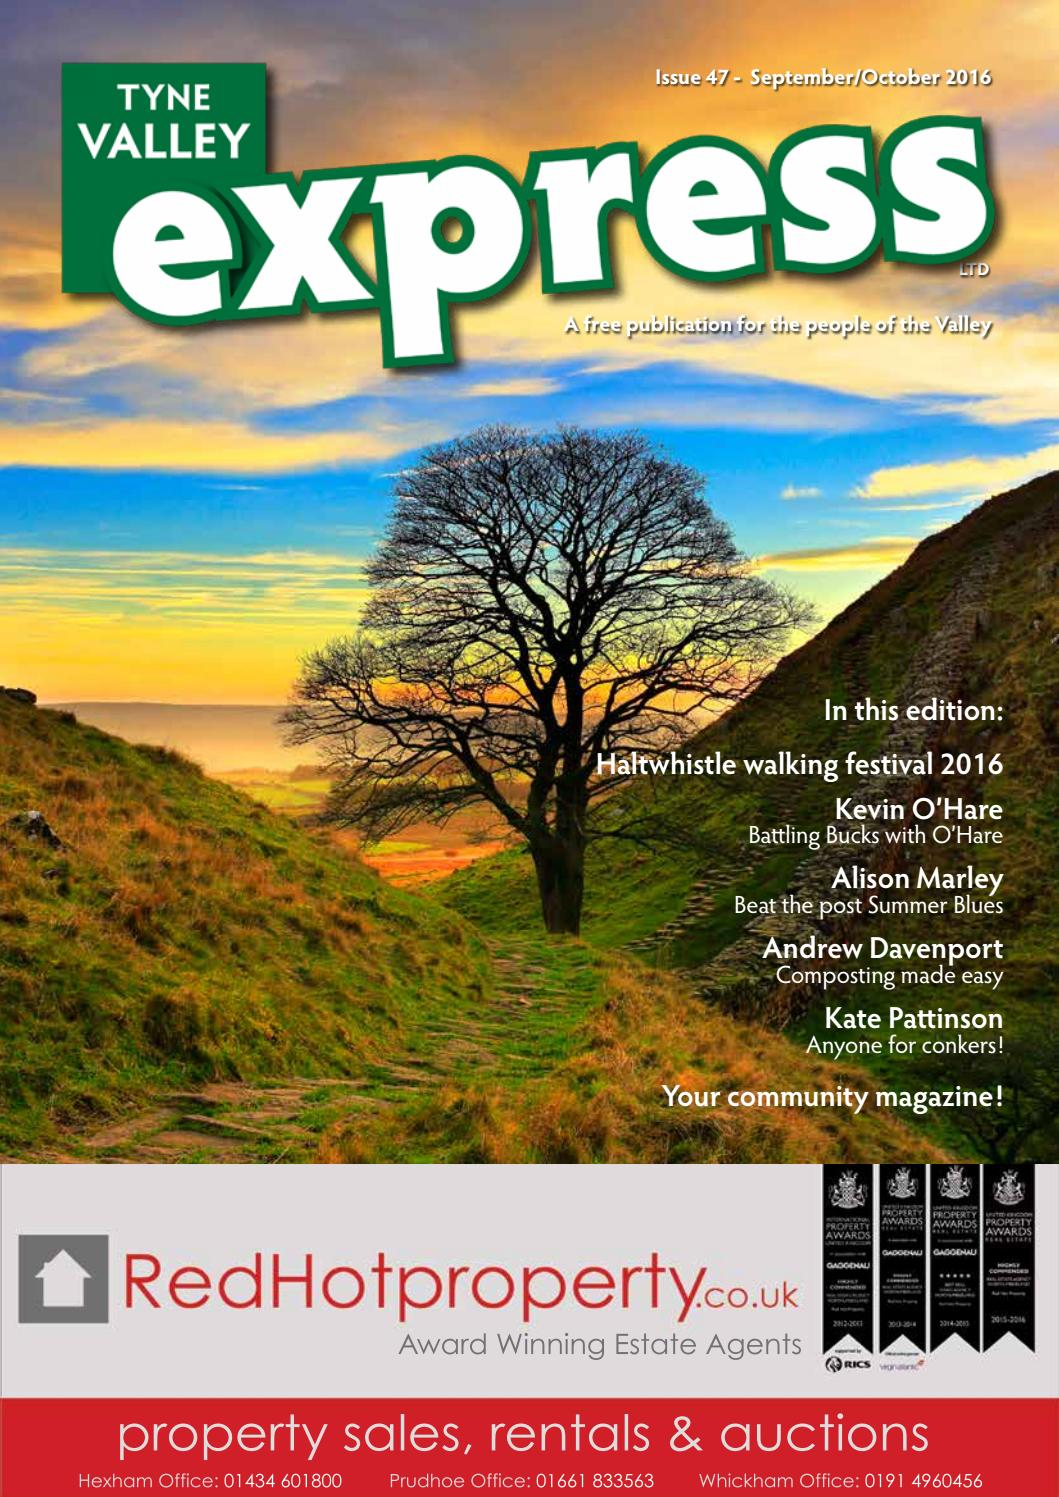 Tomato marmande agm seeds d t brown vegetable seeds - Tyne Valley Express Sep Oct Edition 2016 By Tyne Valley Express Issuu